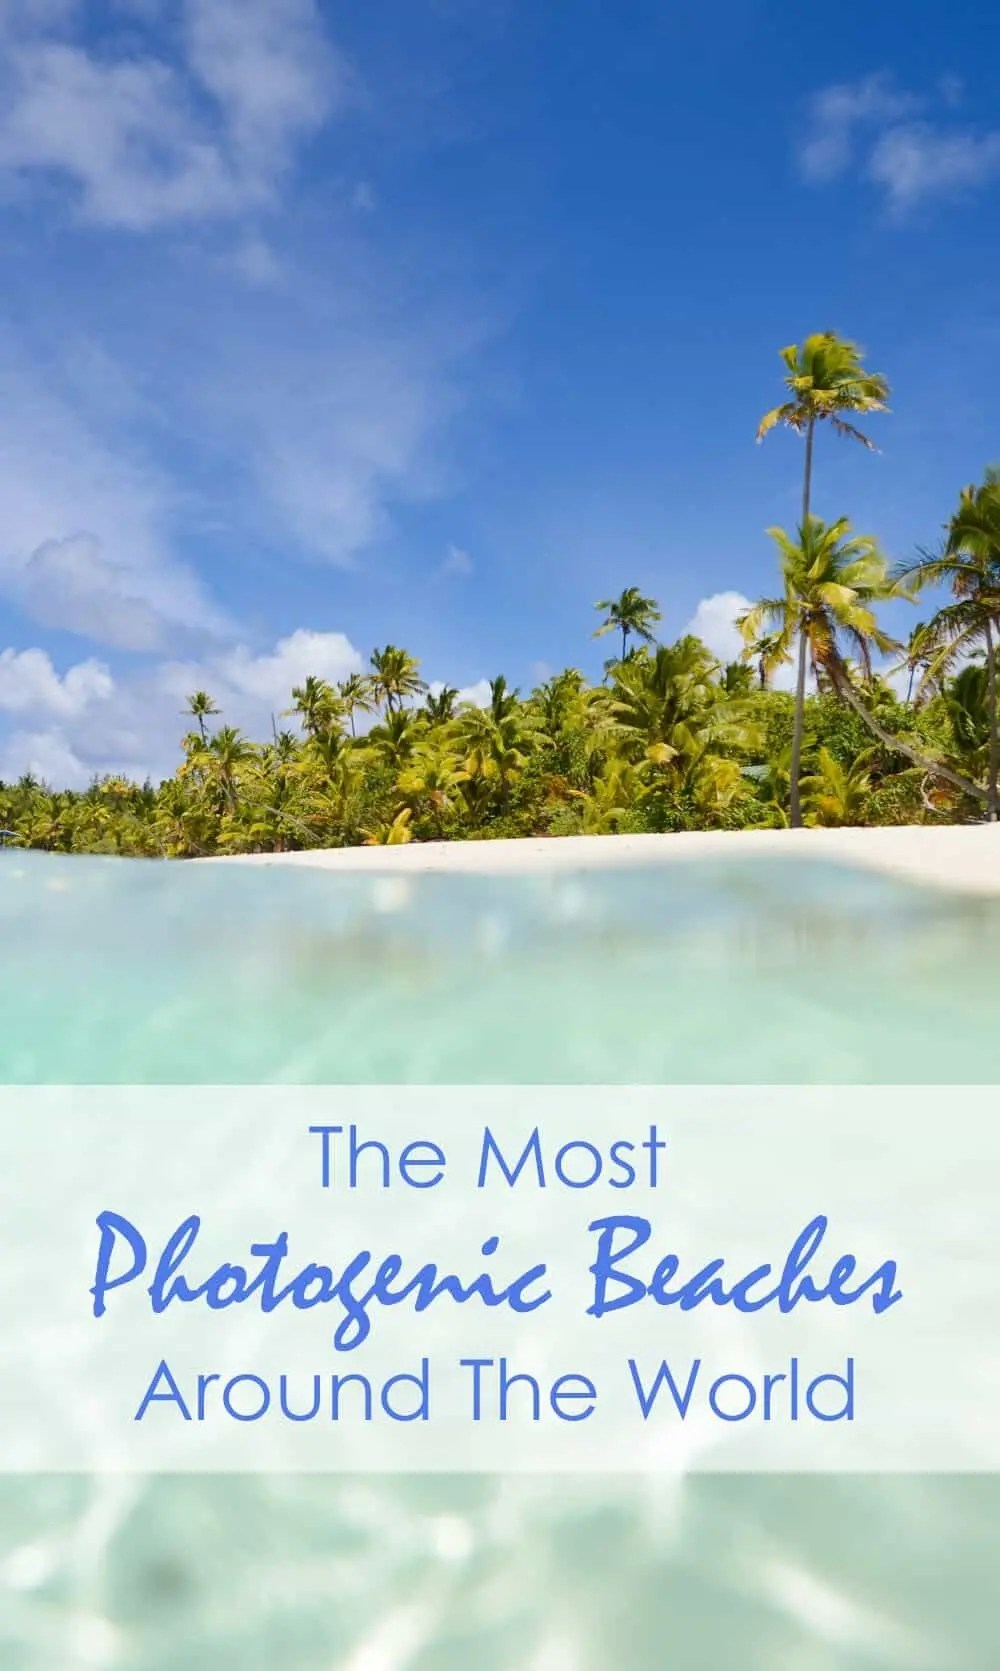 The Most Photogenic Beaches In The World by The Wandering Lens